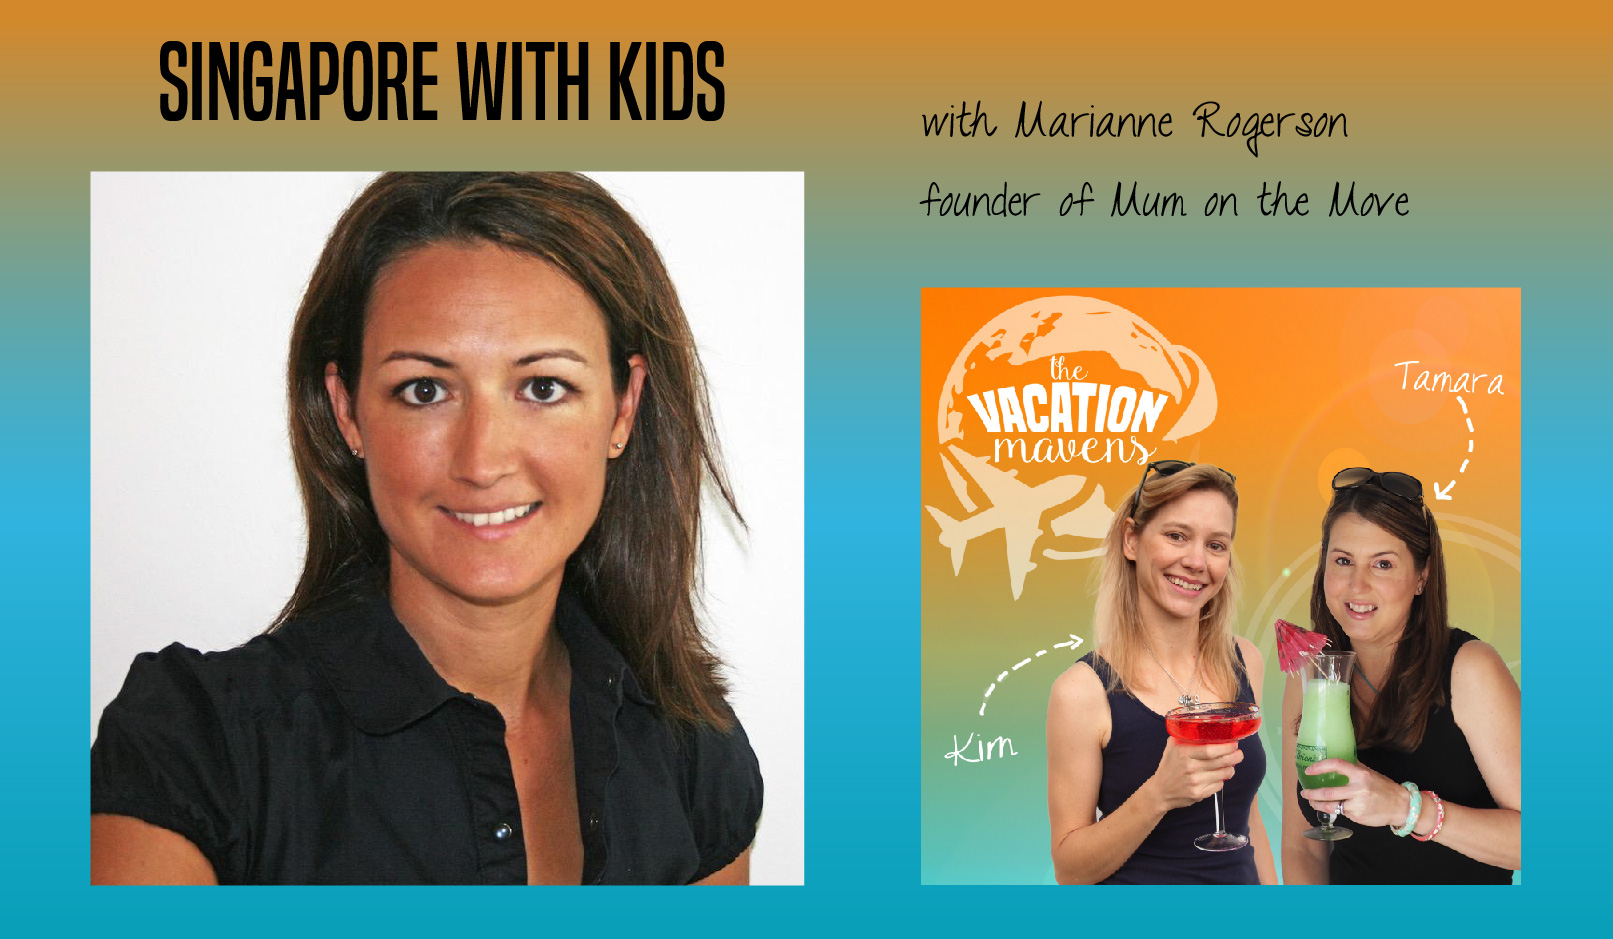 Singapore with kids podcast with Marianne Rogerson